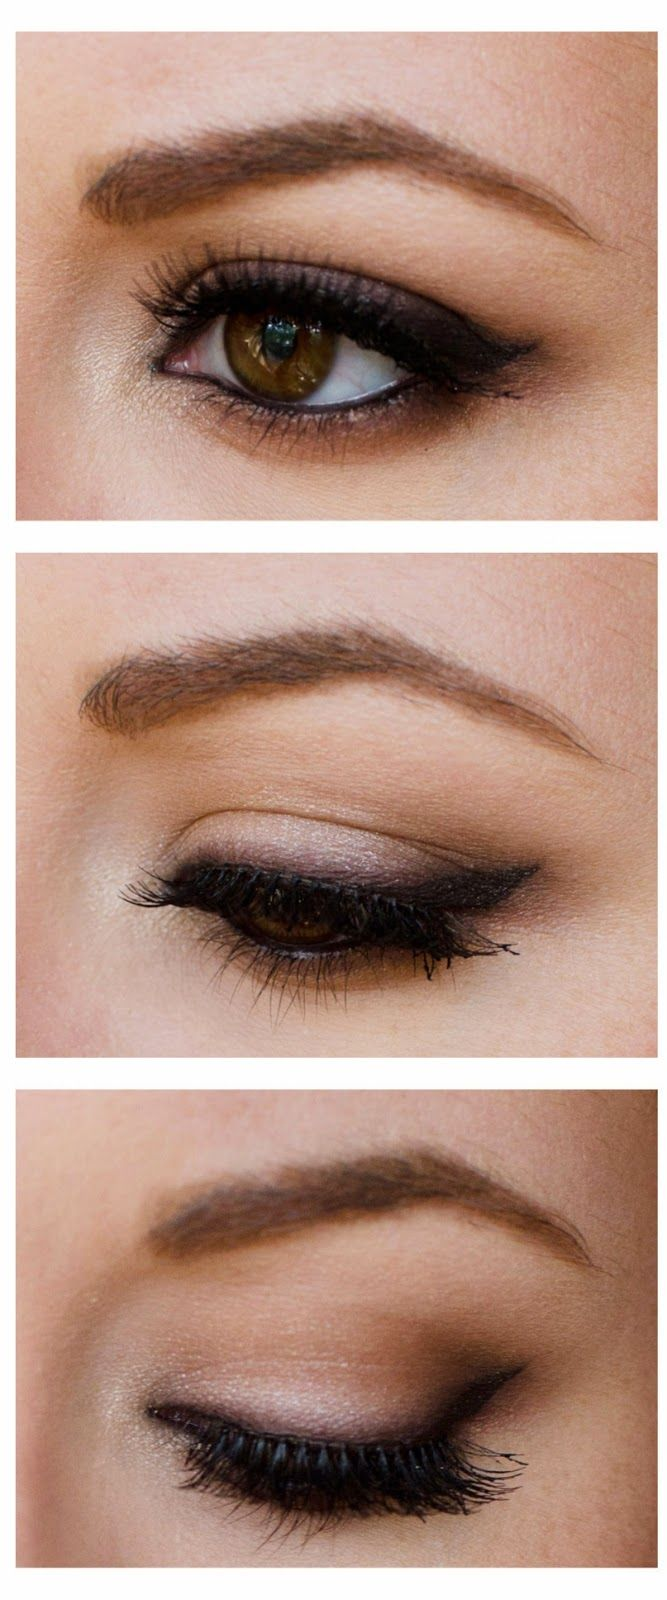 Glamorcast | Makeup - Beauty - Fashion: Smokey black/brown liner #MakeUp #Ecofriendlyspot